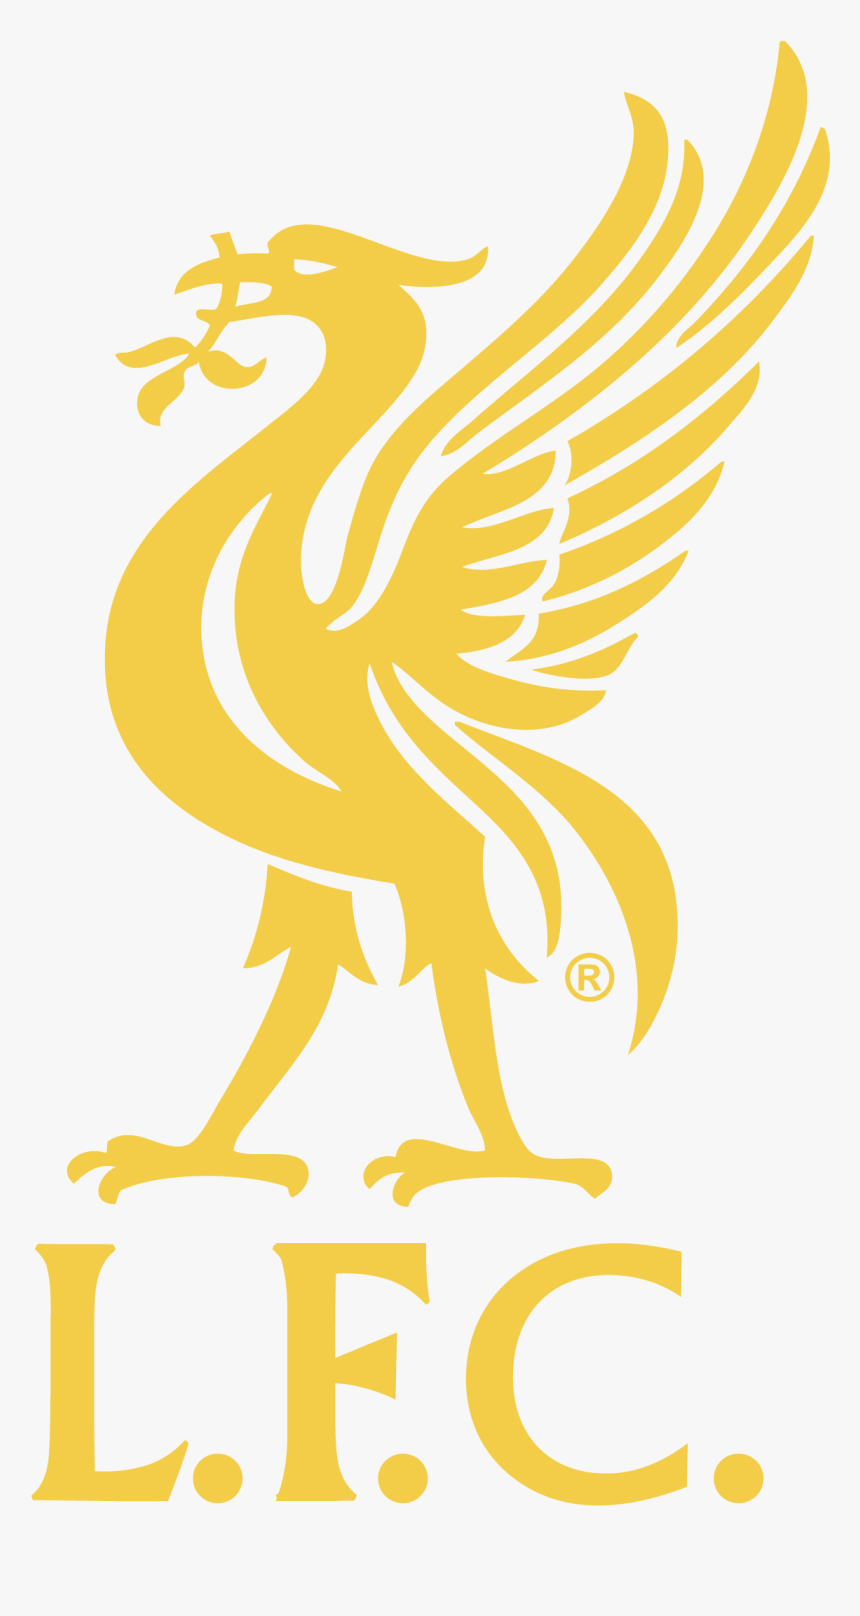 simbolo liverpool fc hd png download transparent png image pngitem simbolo liverpool fc hd png download